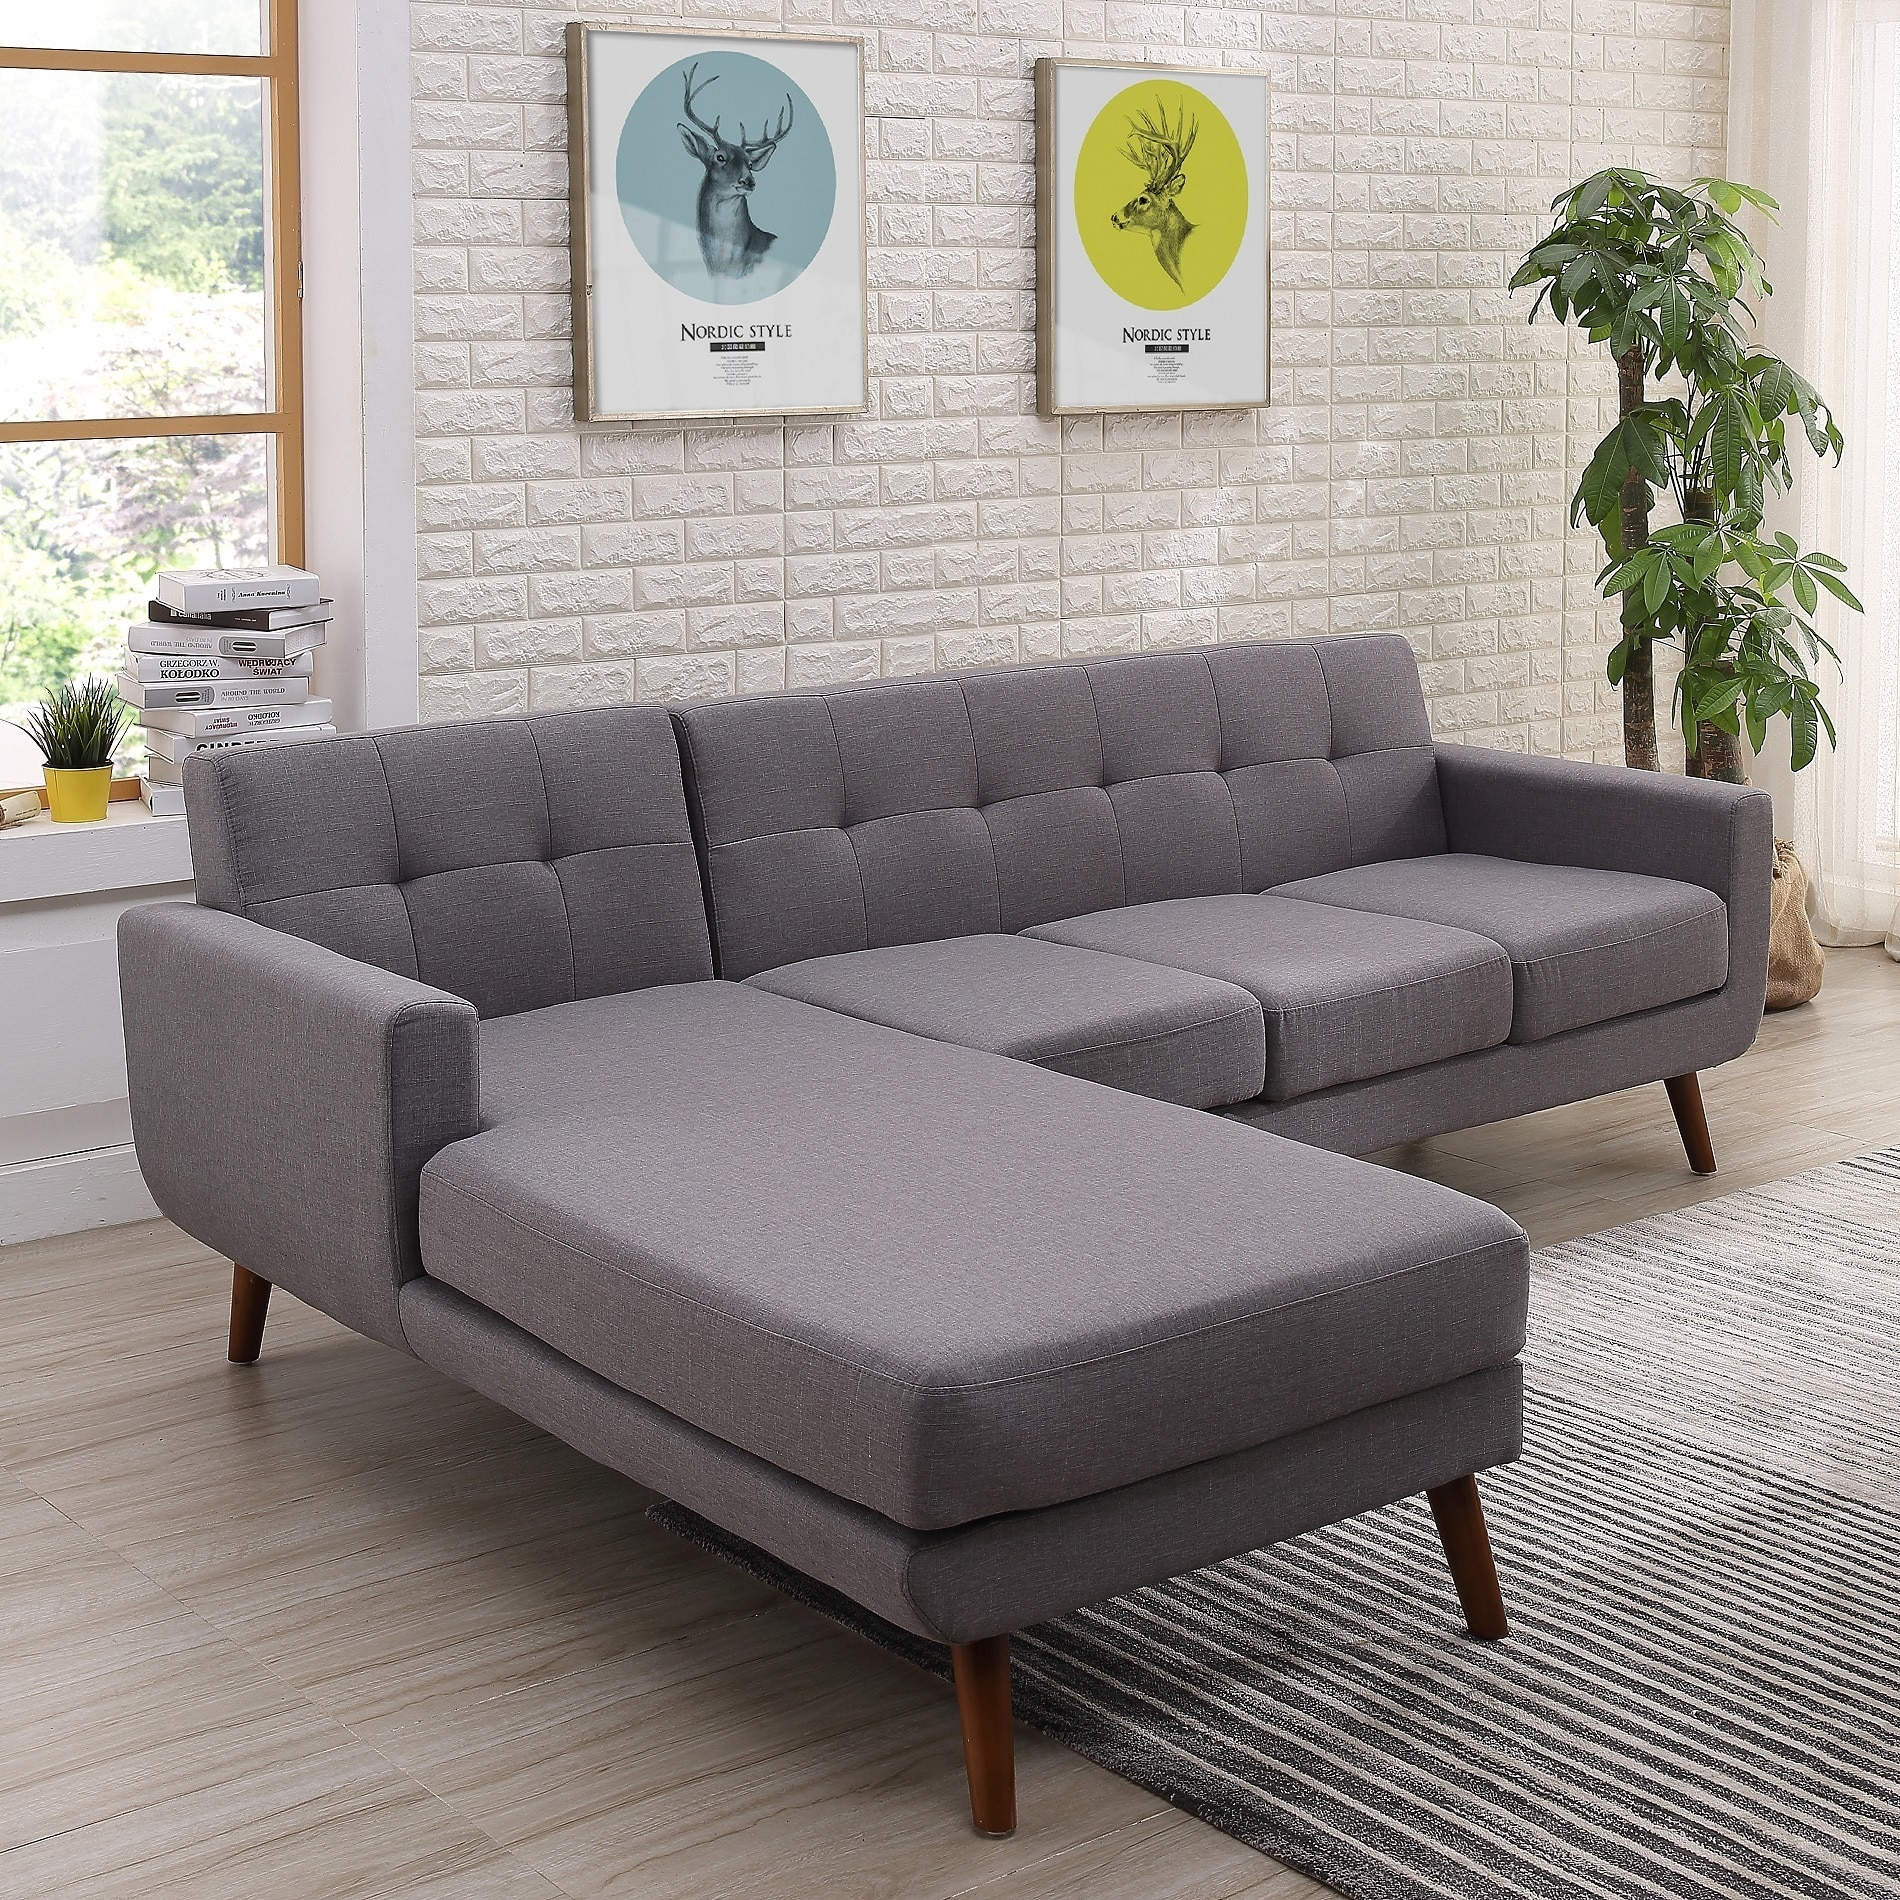 Fabric Sectional Sofas Canada Shop Mid Century Left Facing Tufted Linen Fabric Upholstered